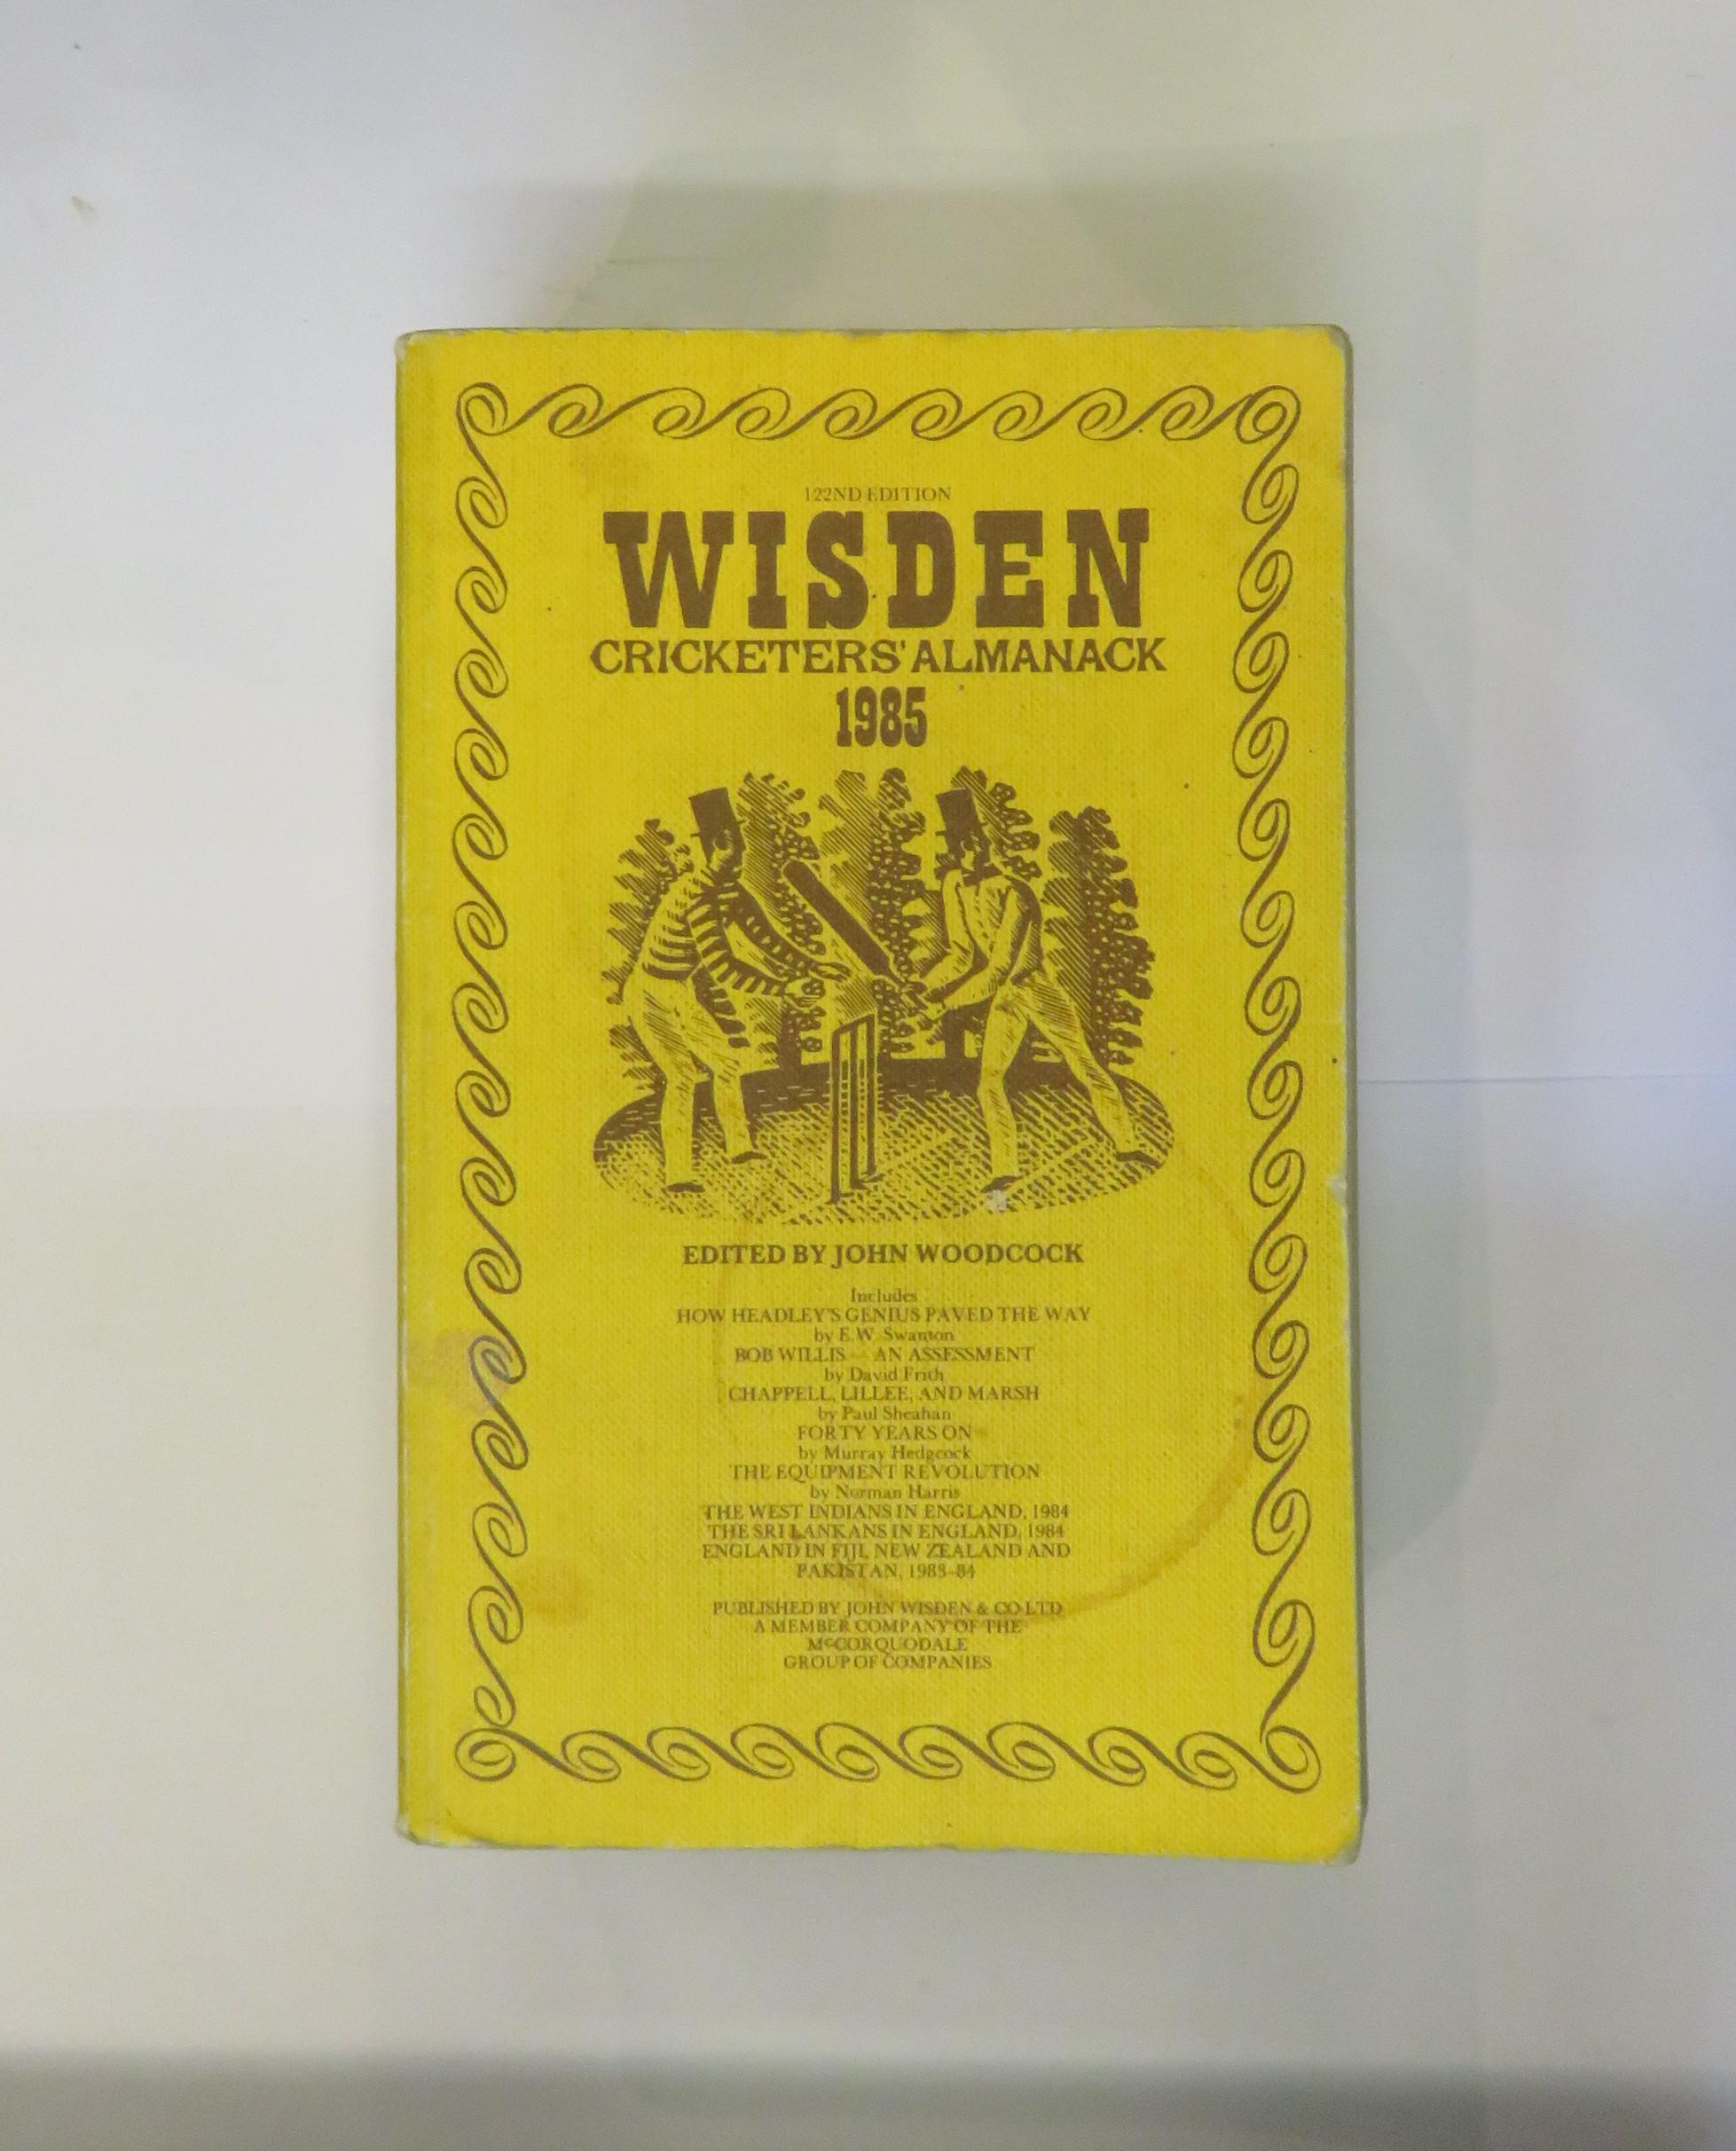 Wisden Cricketers' Almanack 1985